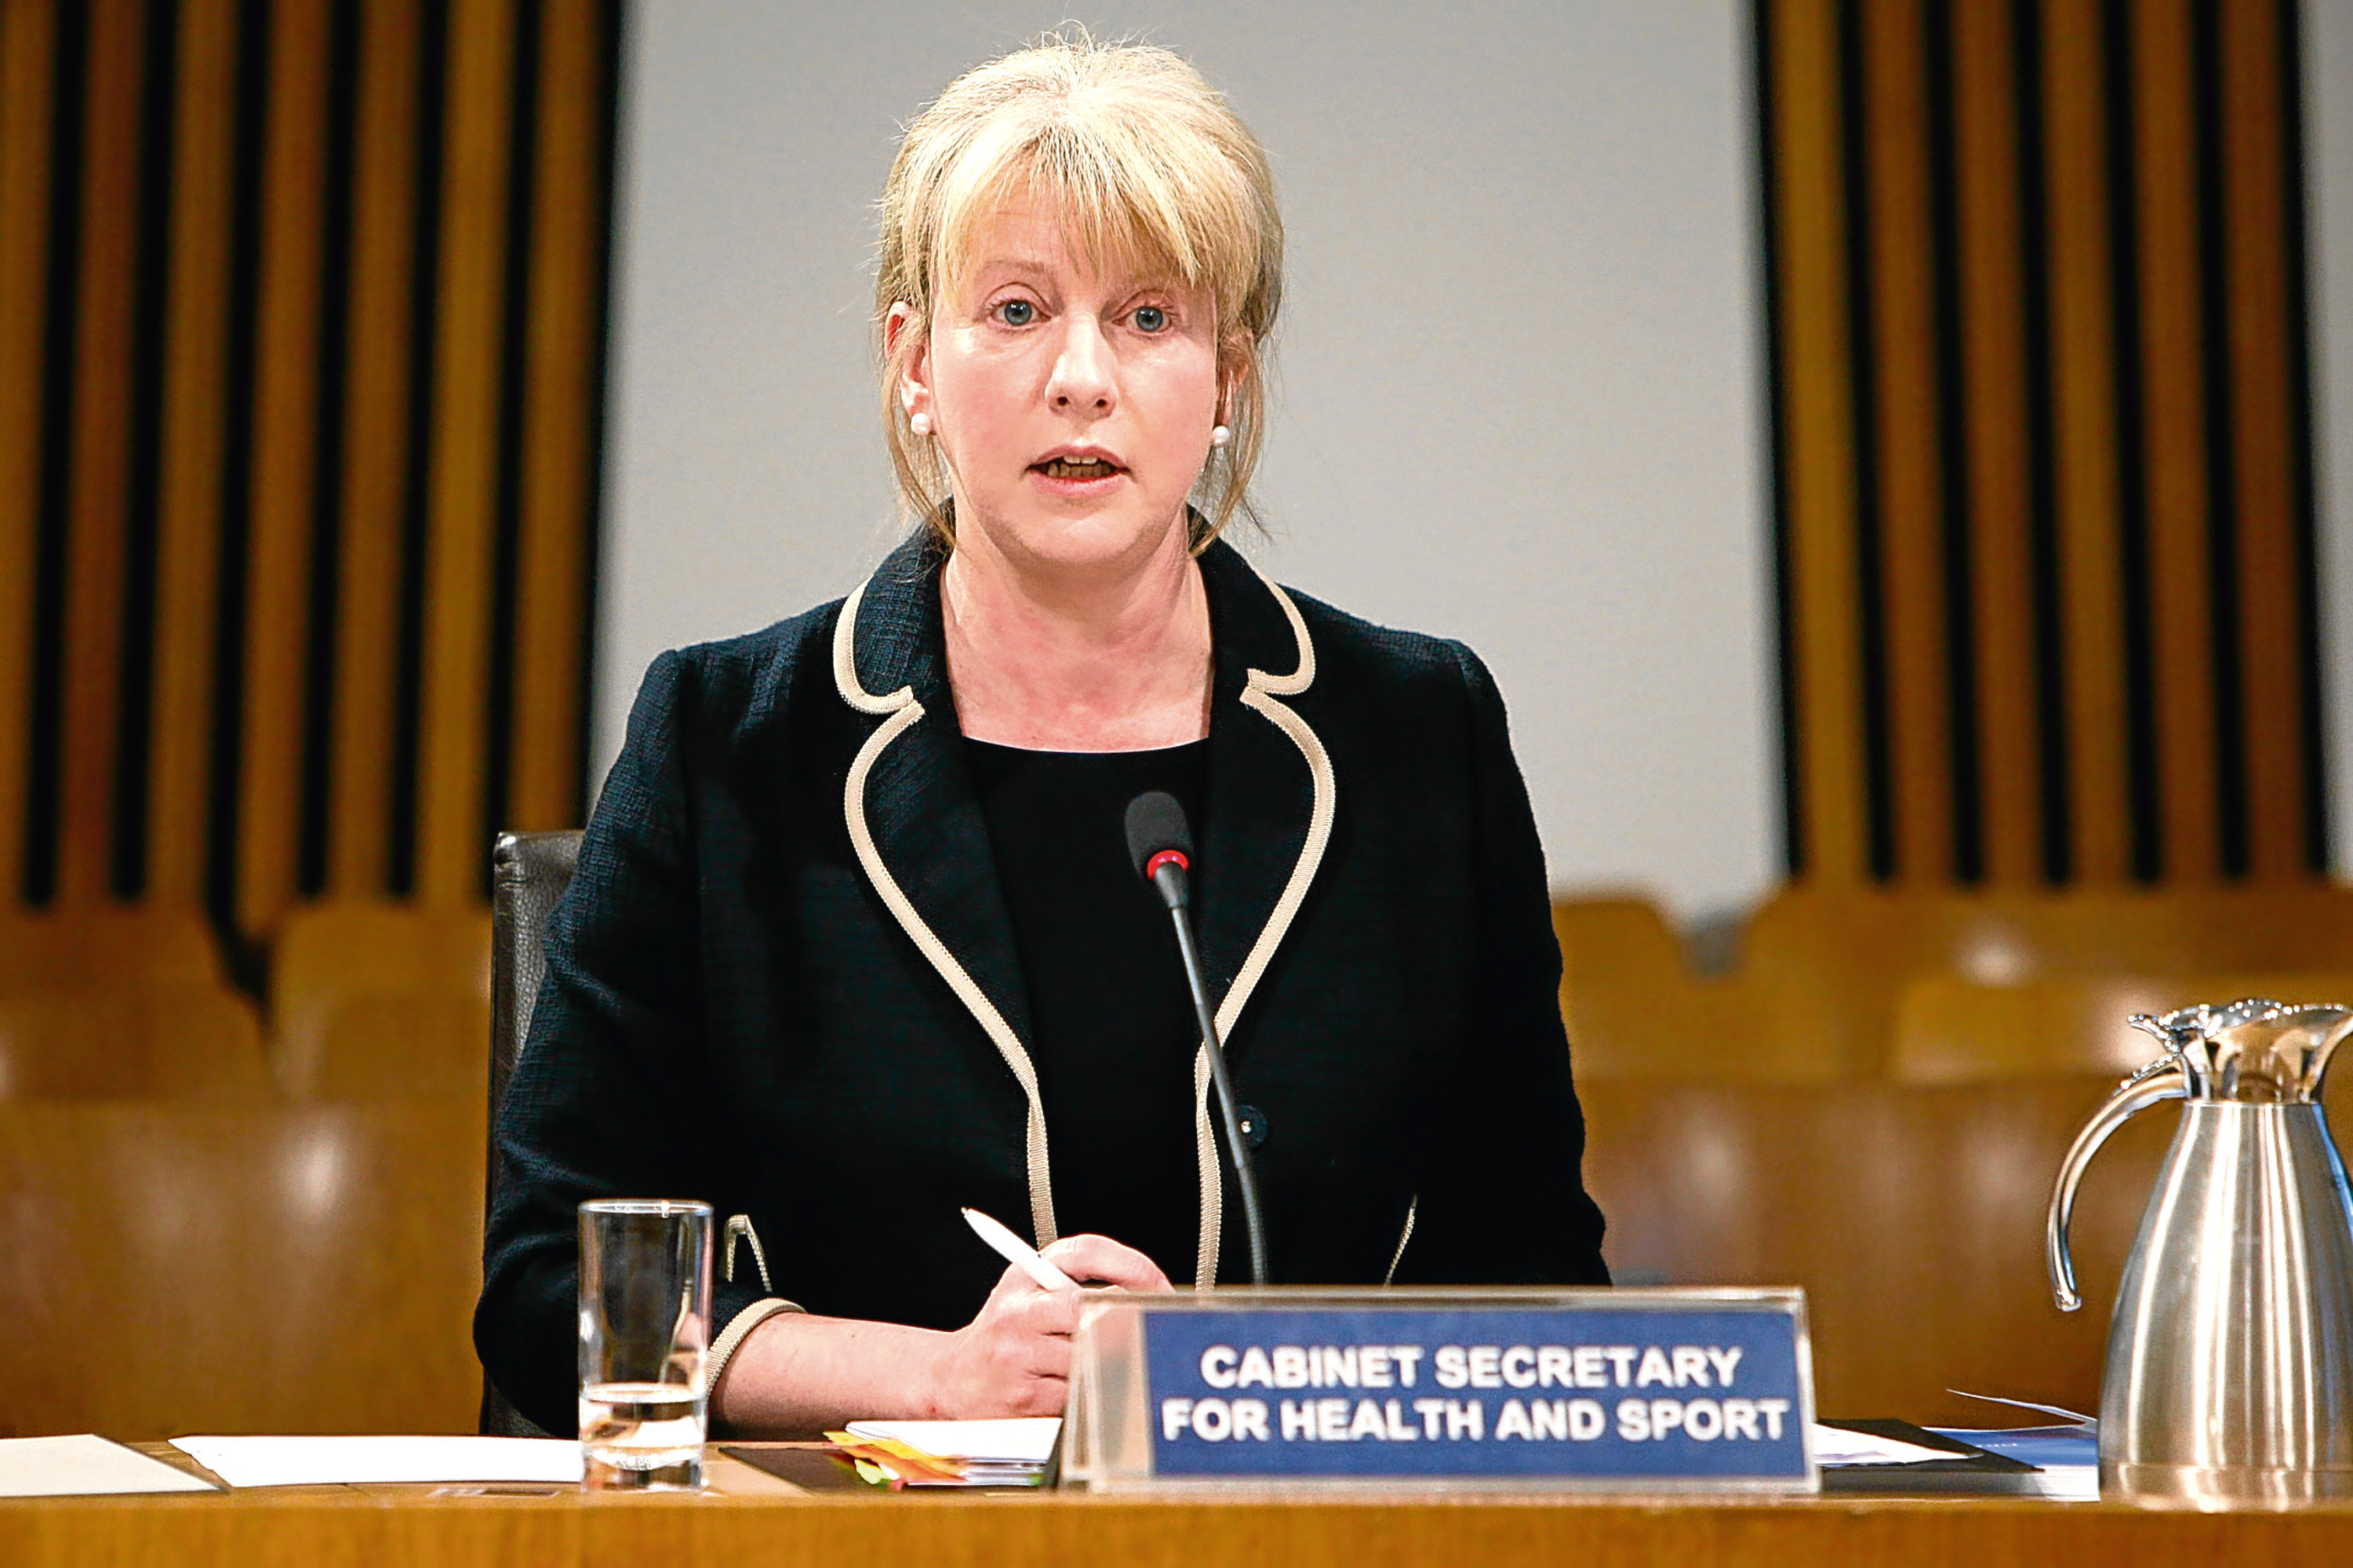 Shona Robison, Cabinet Secretary for Health a (Andrew Cowan/Scottish Parliament)